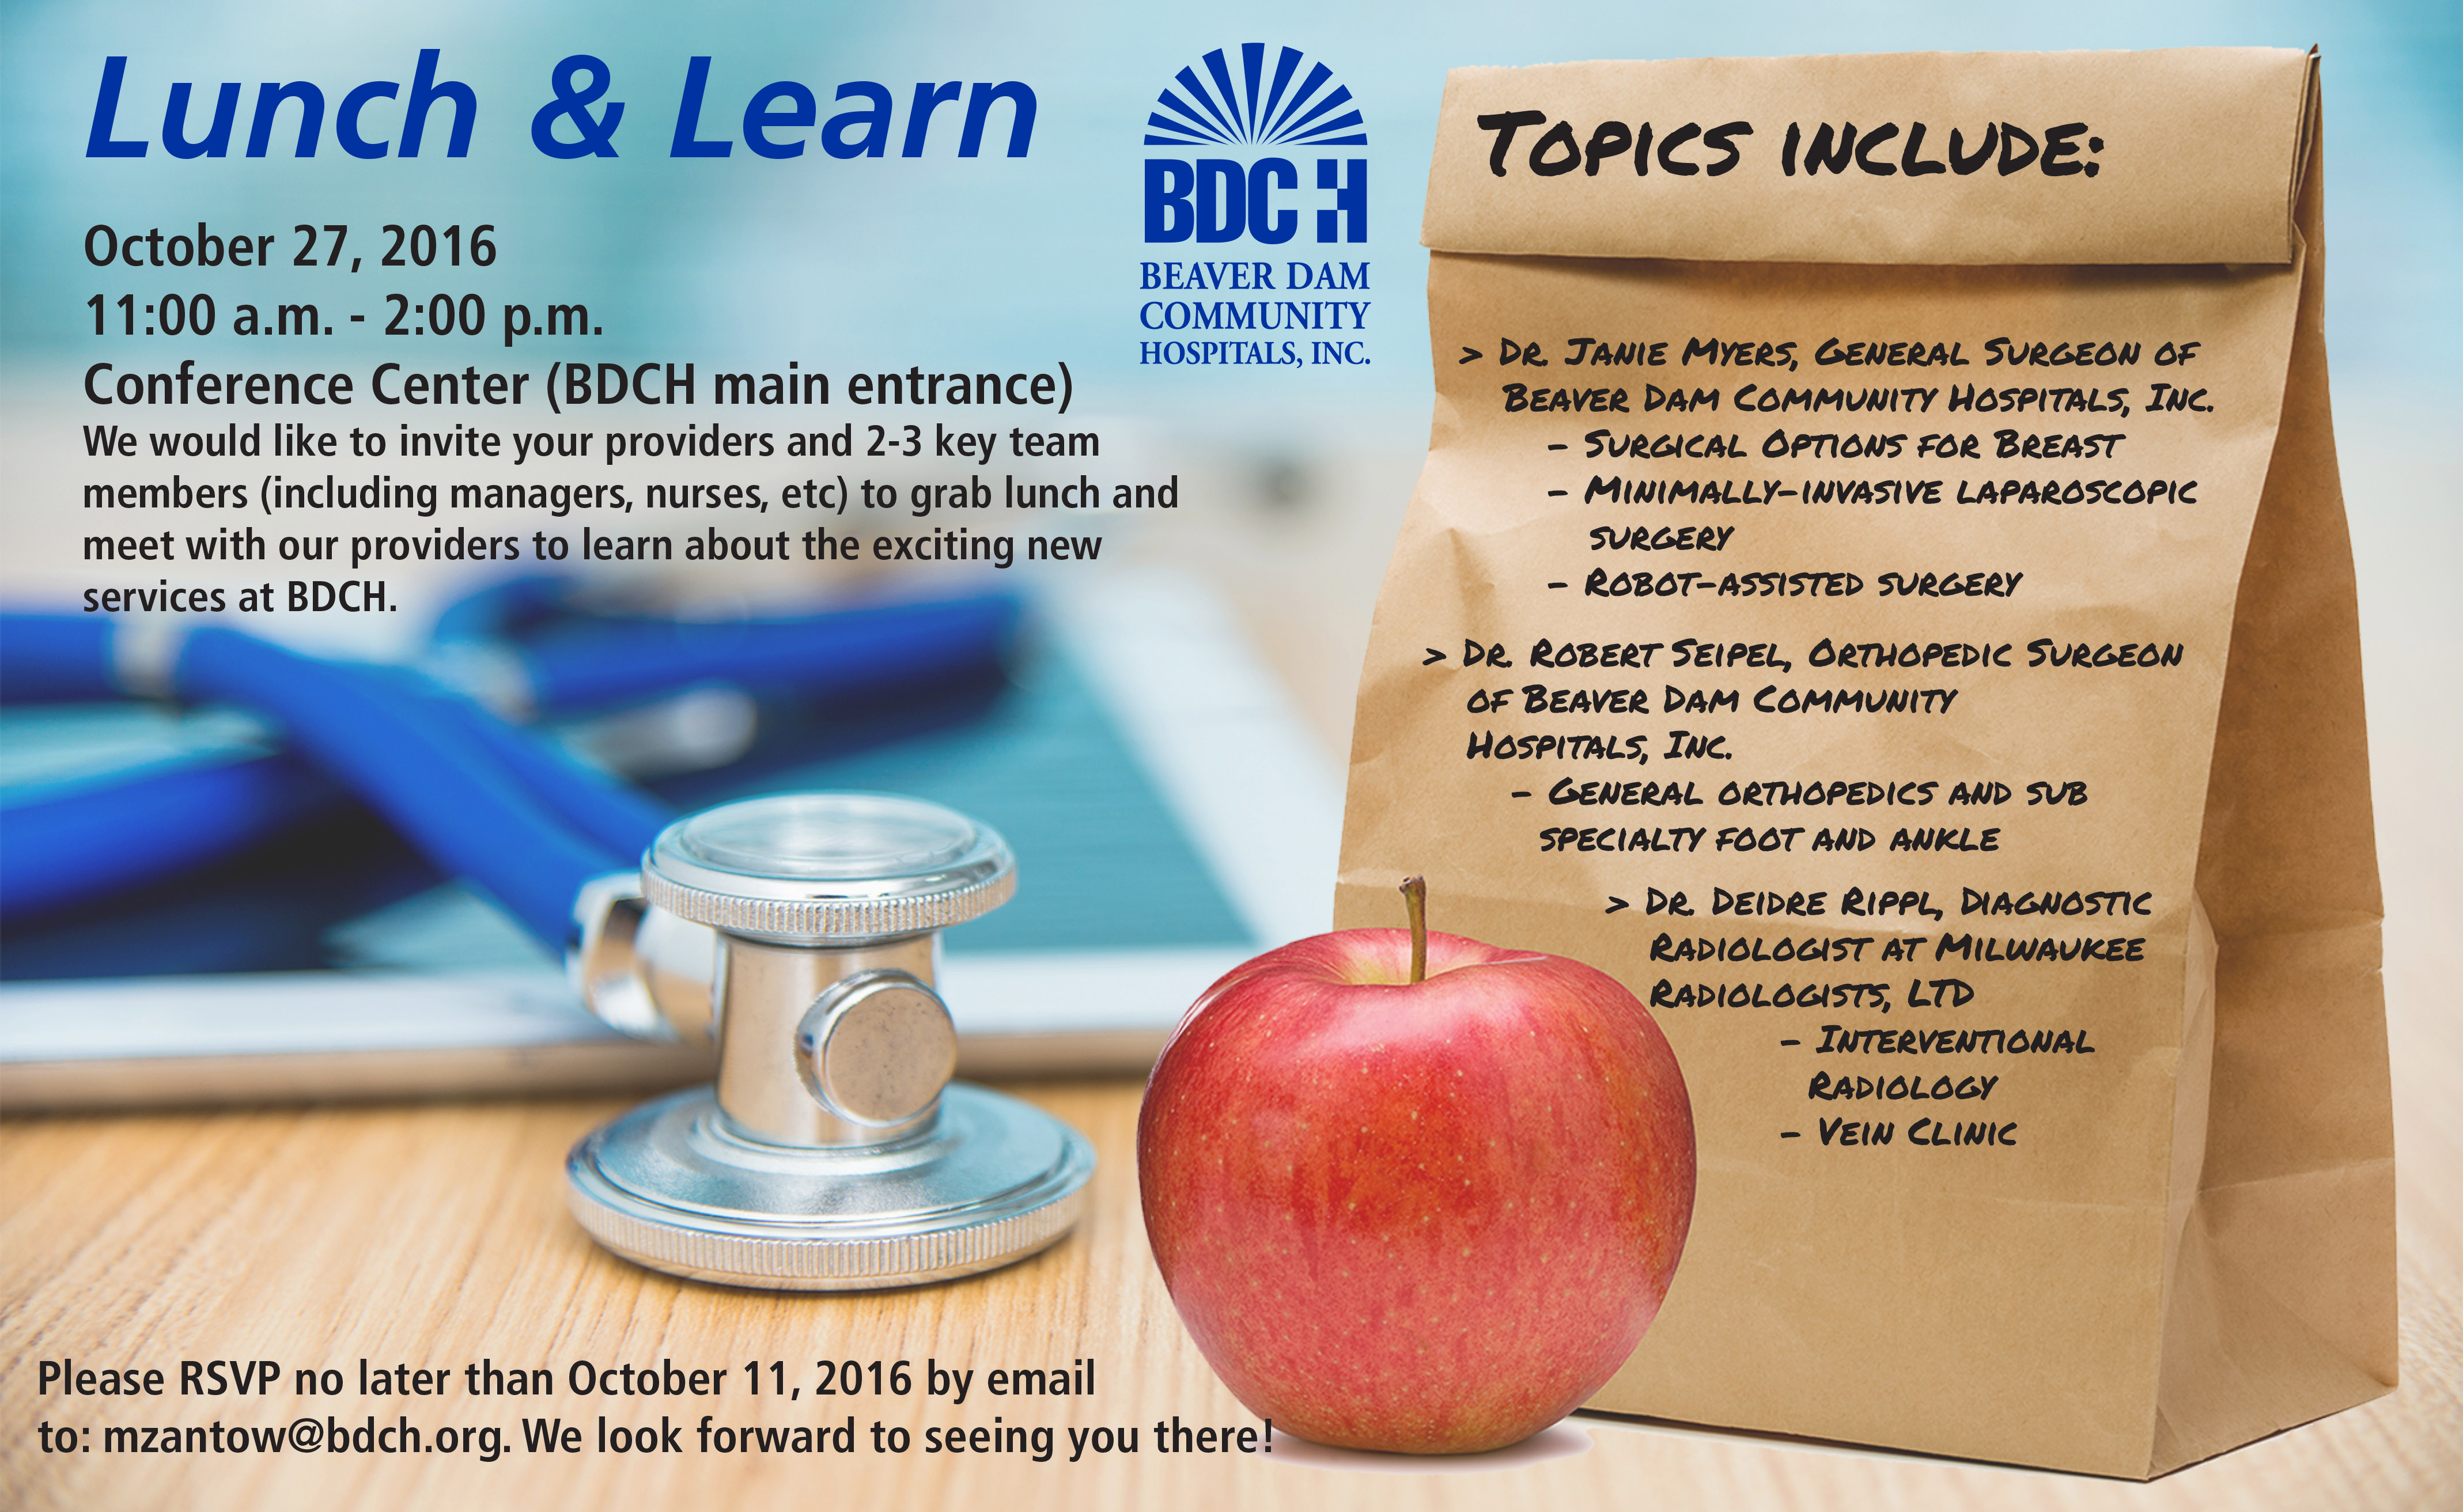 BDCH Lunch & Learn Event Flyer